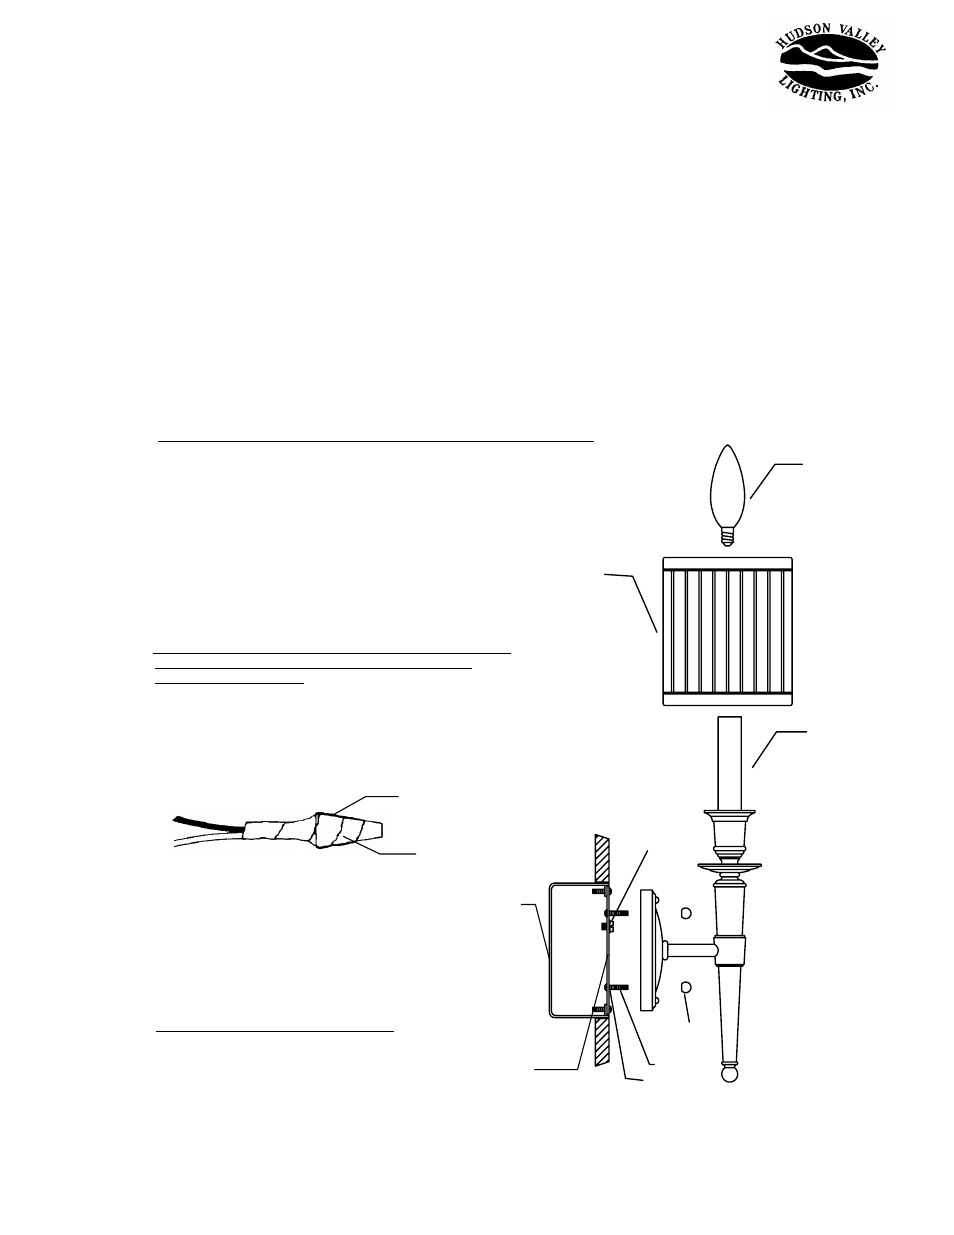 Hudson Valley Lighting Abington 4901 User Manual 1 Page Also For Fuse Box Short Circuit Along With How To Wire An Electrical Outlet 4902